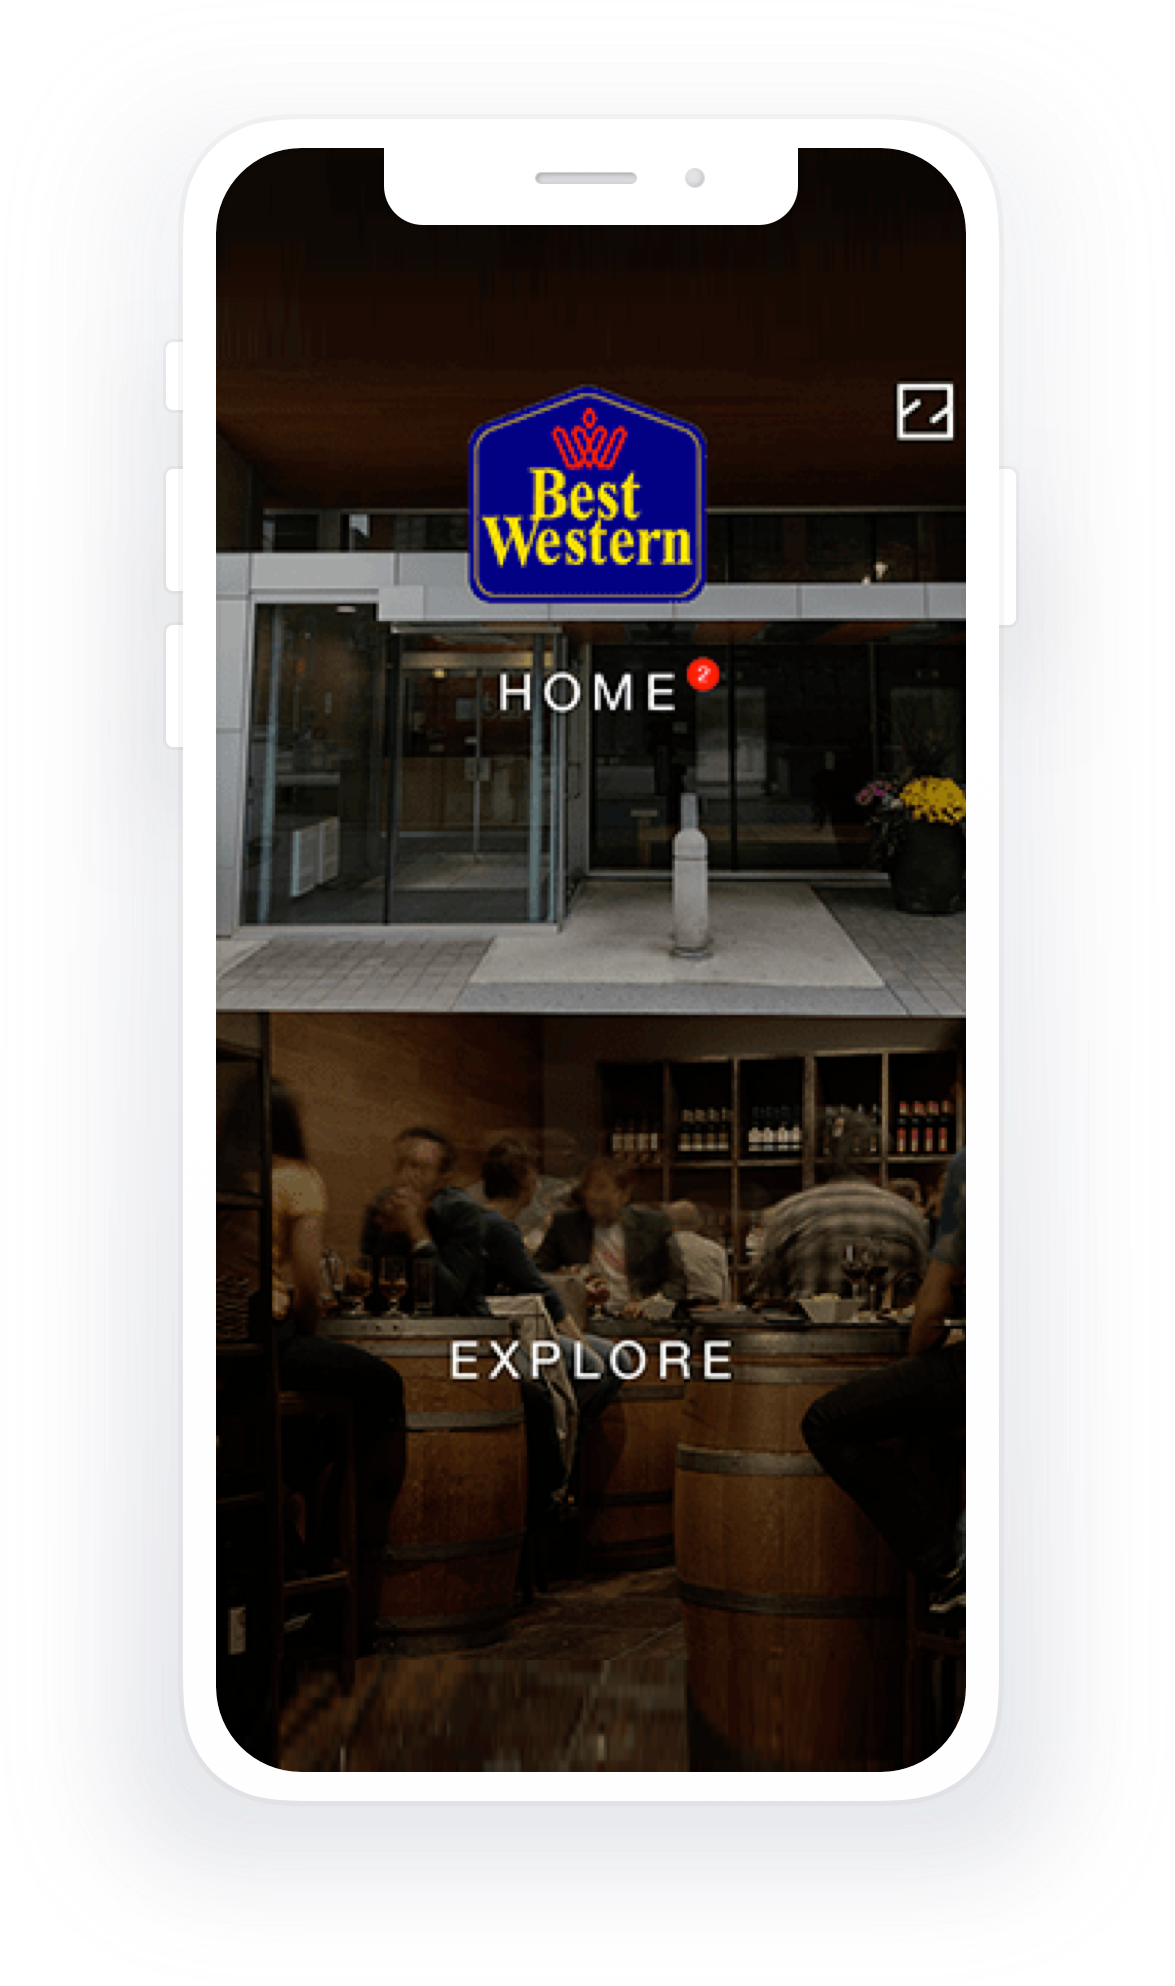 Best Western Case Study | An Enthralling Hotel App